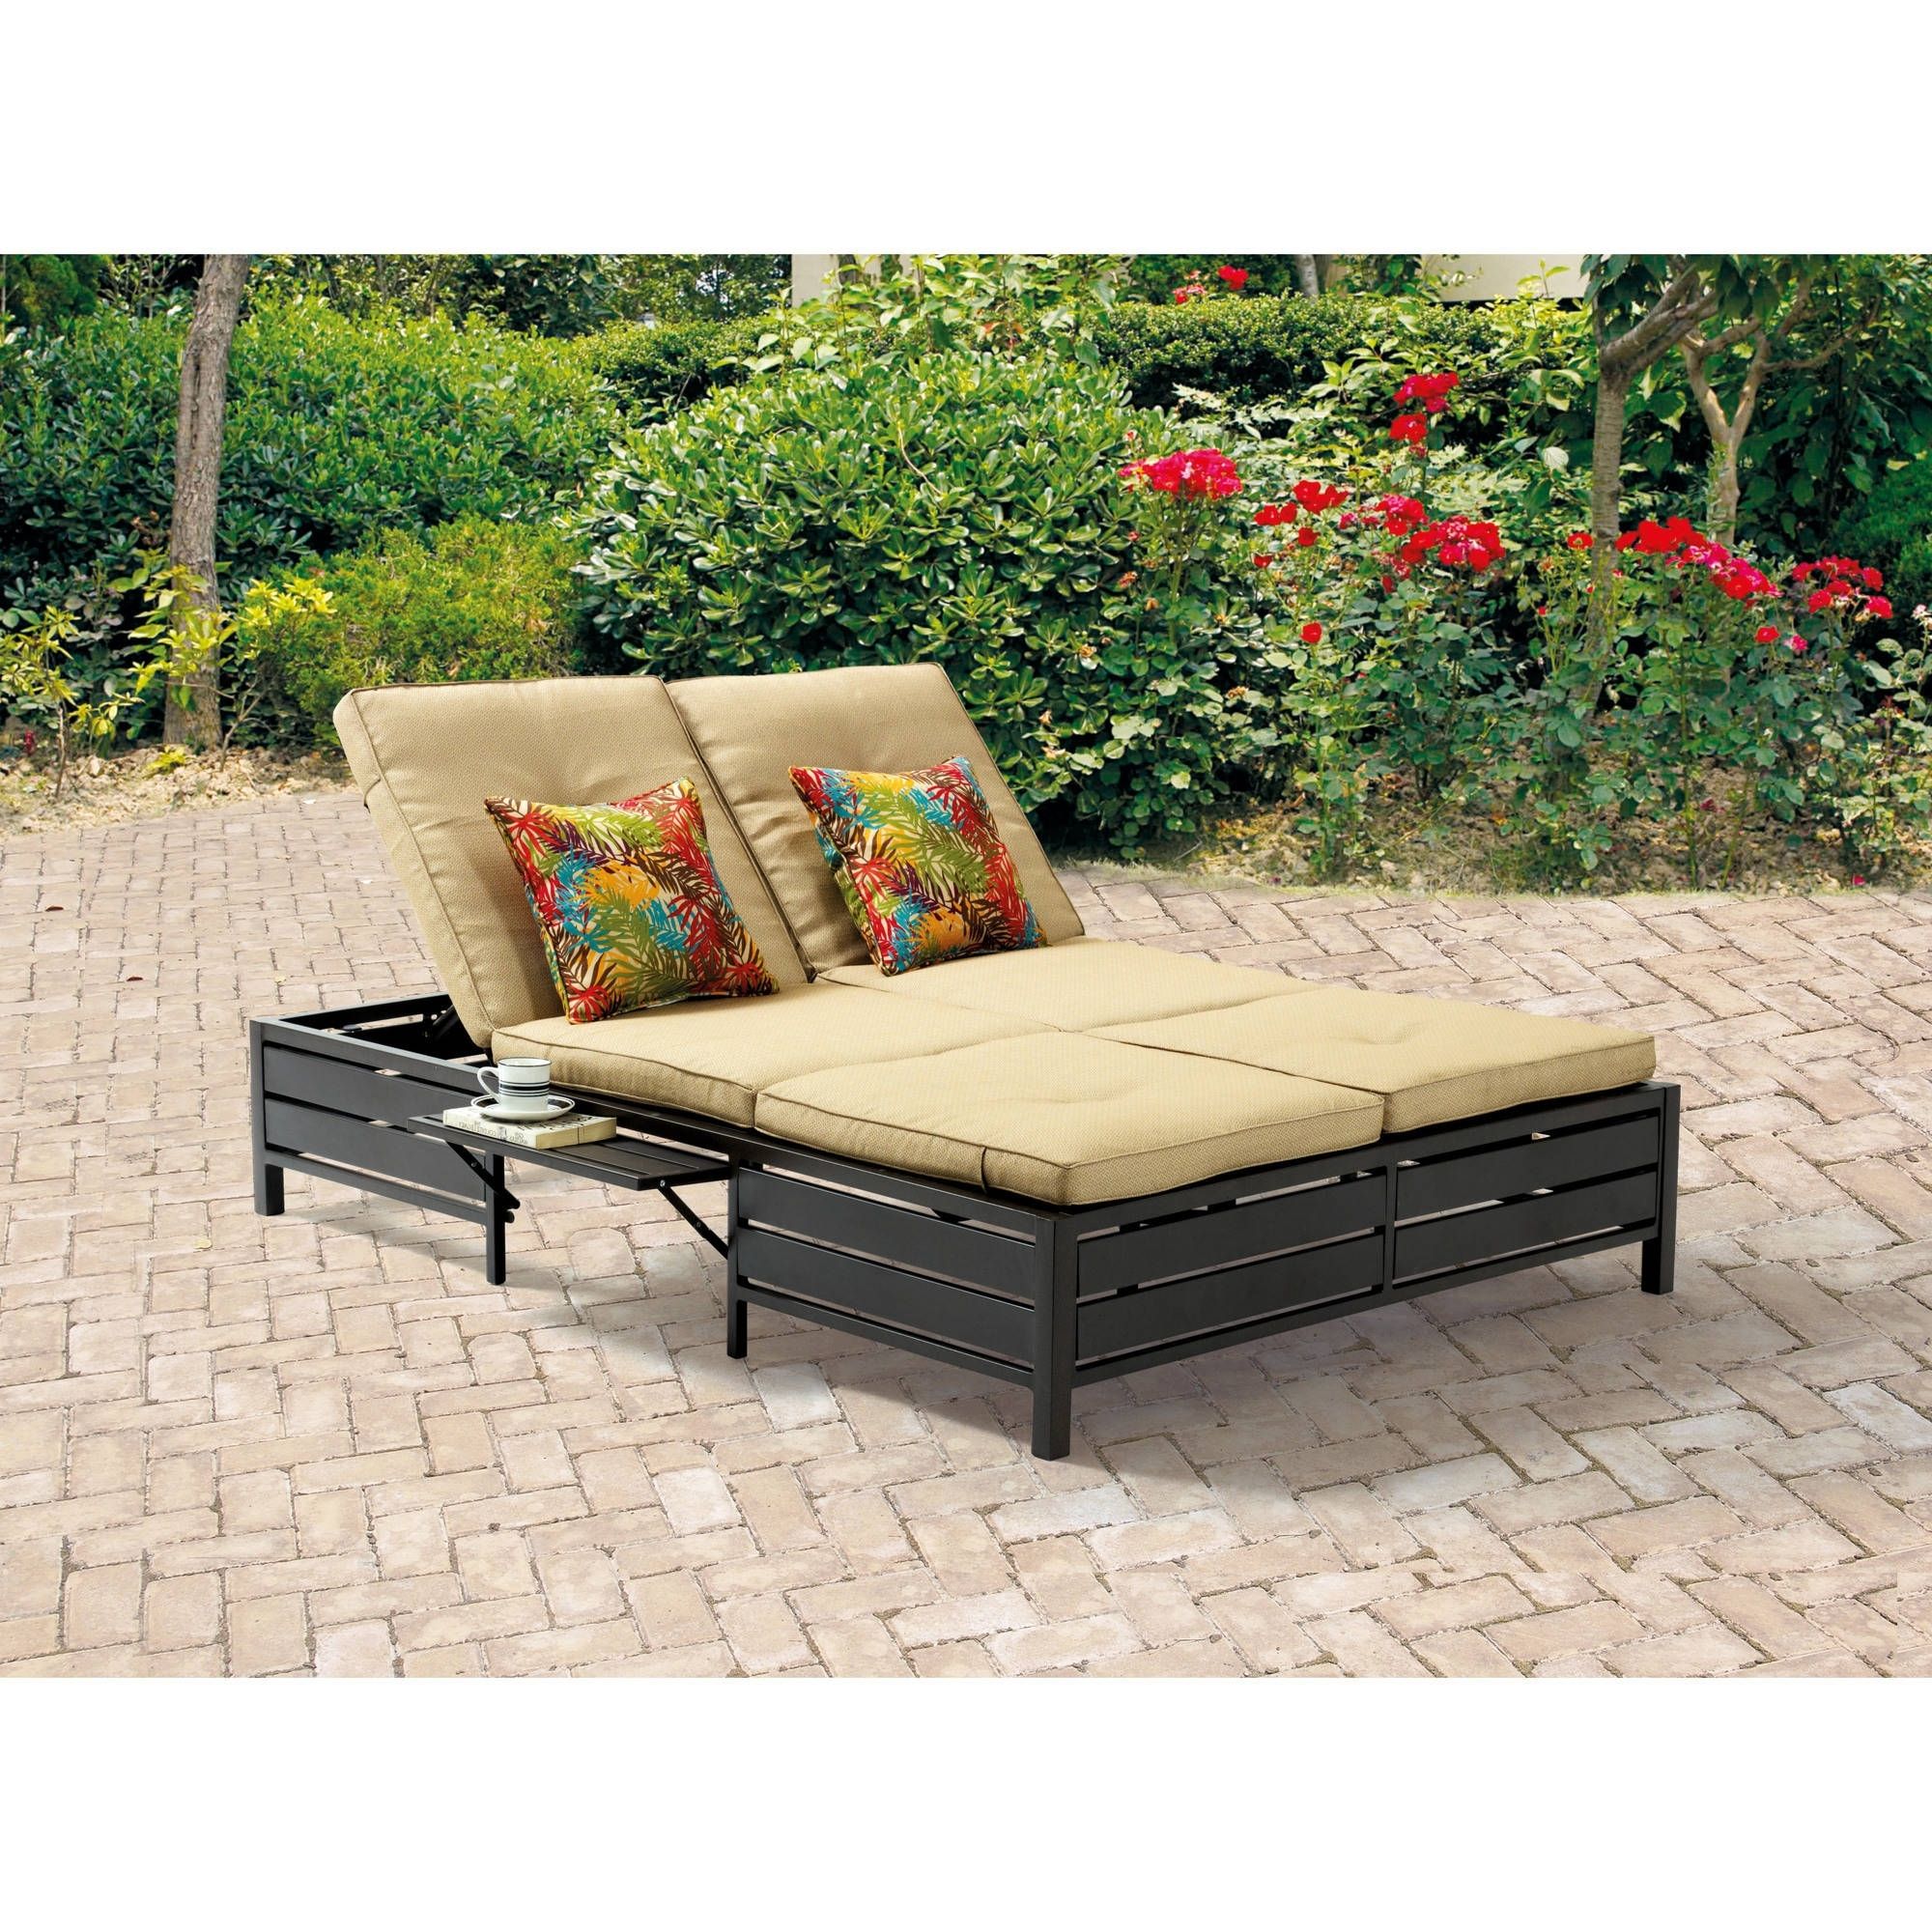 Mainstays Outdoor Double Chaise Lounger, Tan, Seats 2 – Walmart Inside Most Current Outdoor Double Chaise Lounges (View 12 of 15)